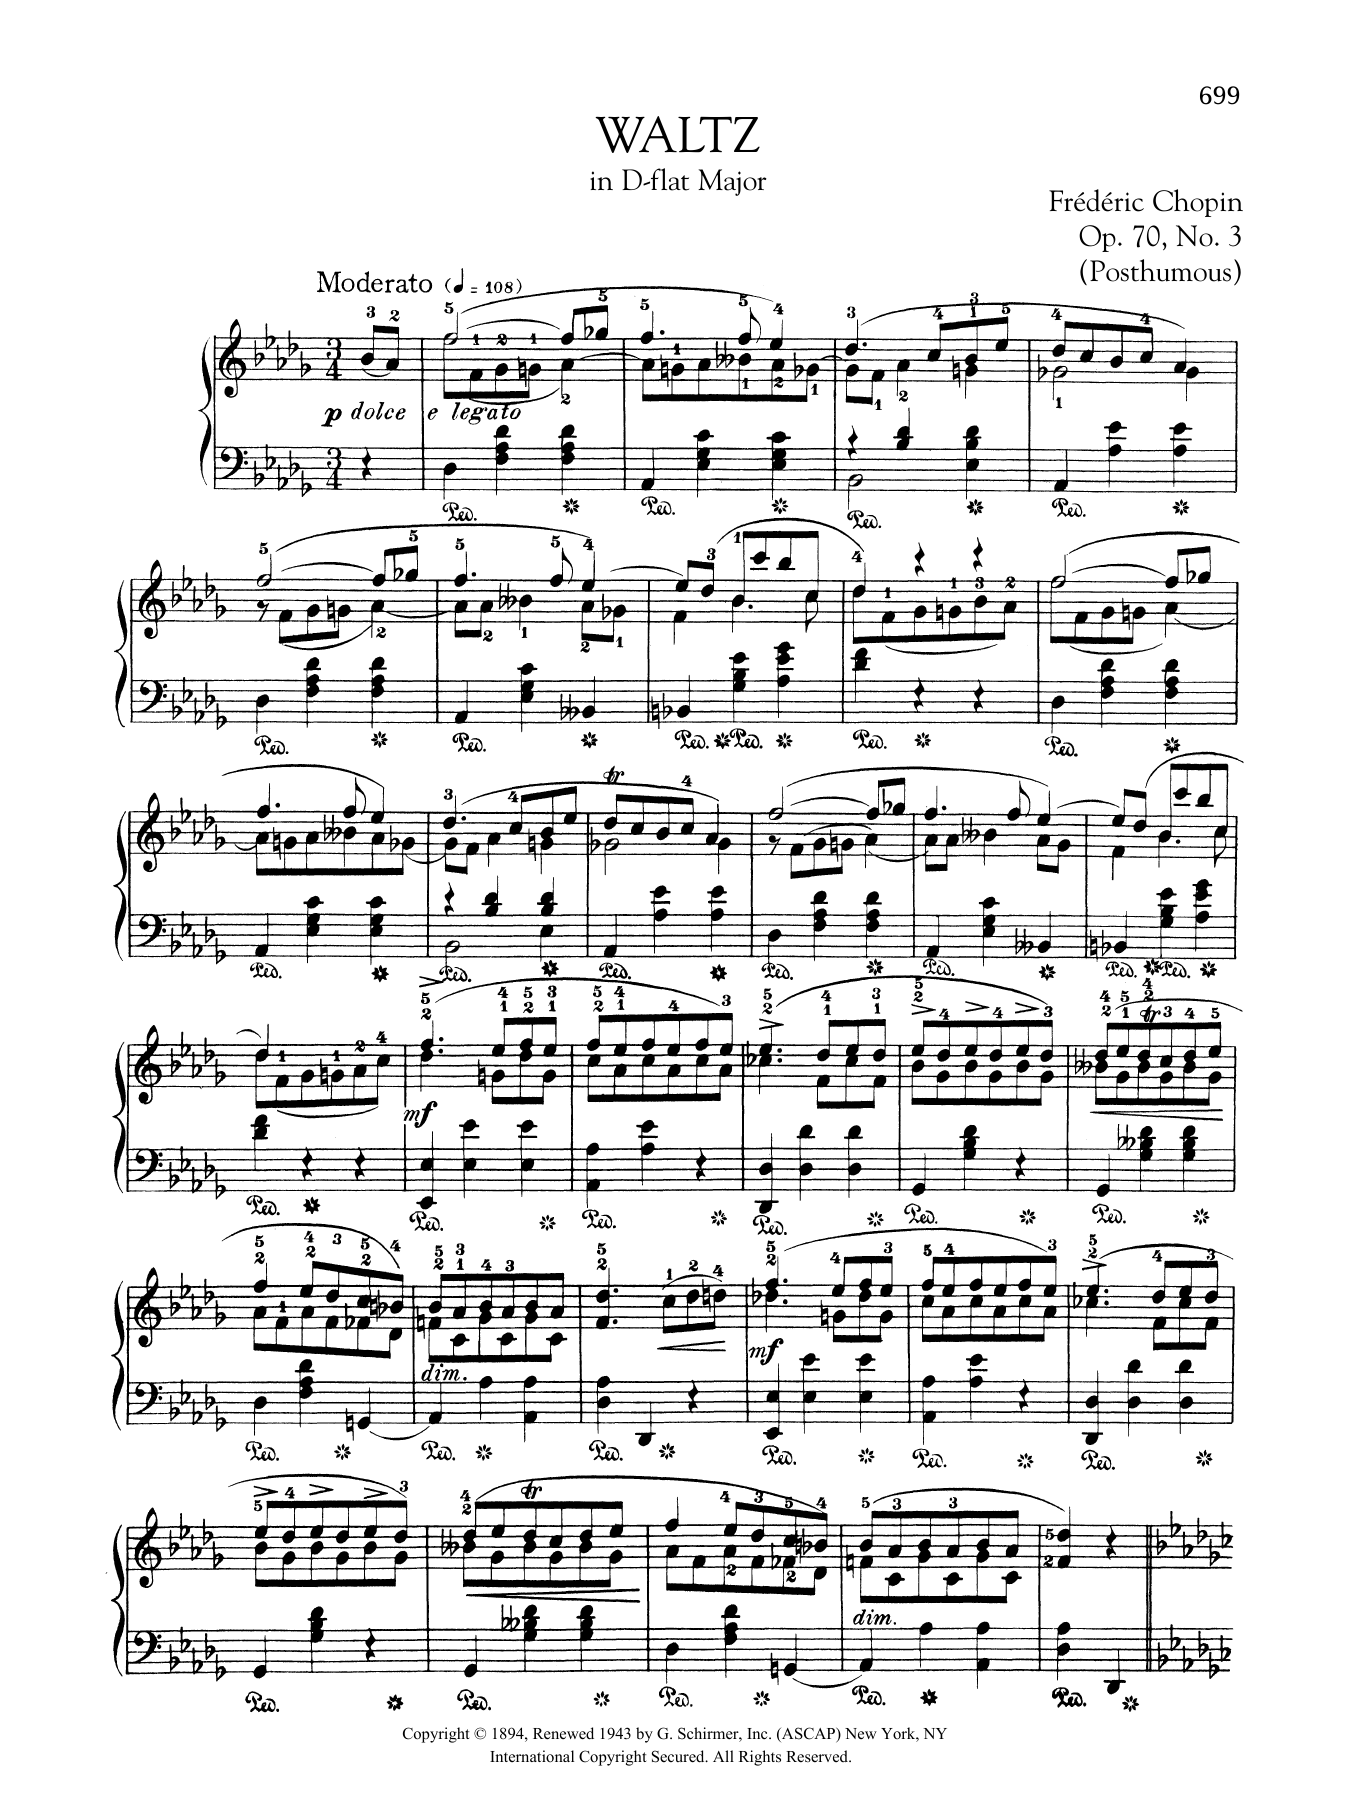 Waltz in D-flat Major, Op. 70, No. 3 (Posthumous) Sheet Music